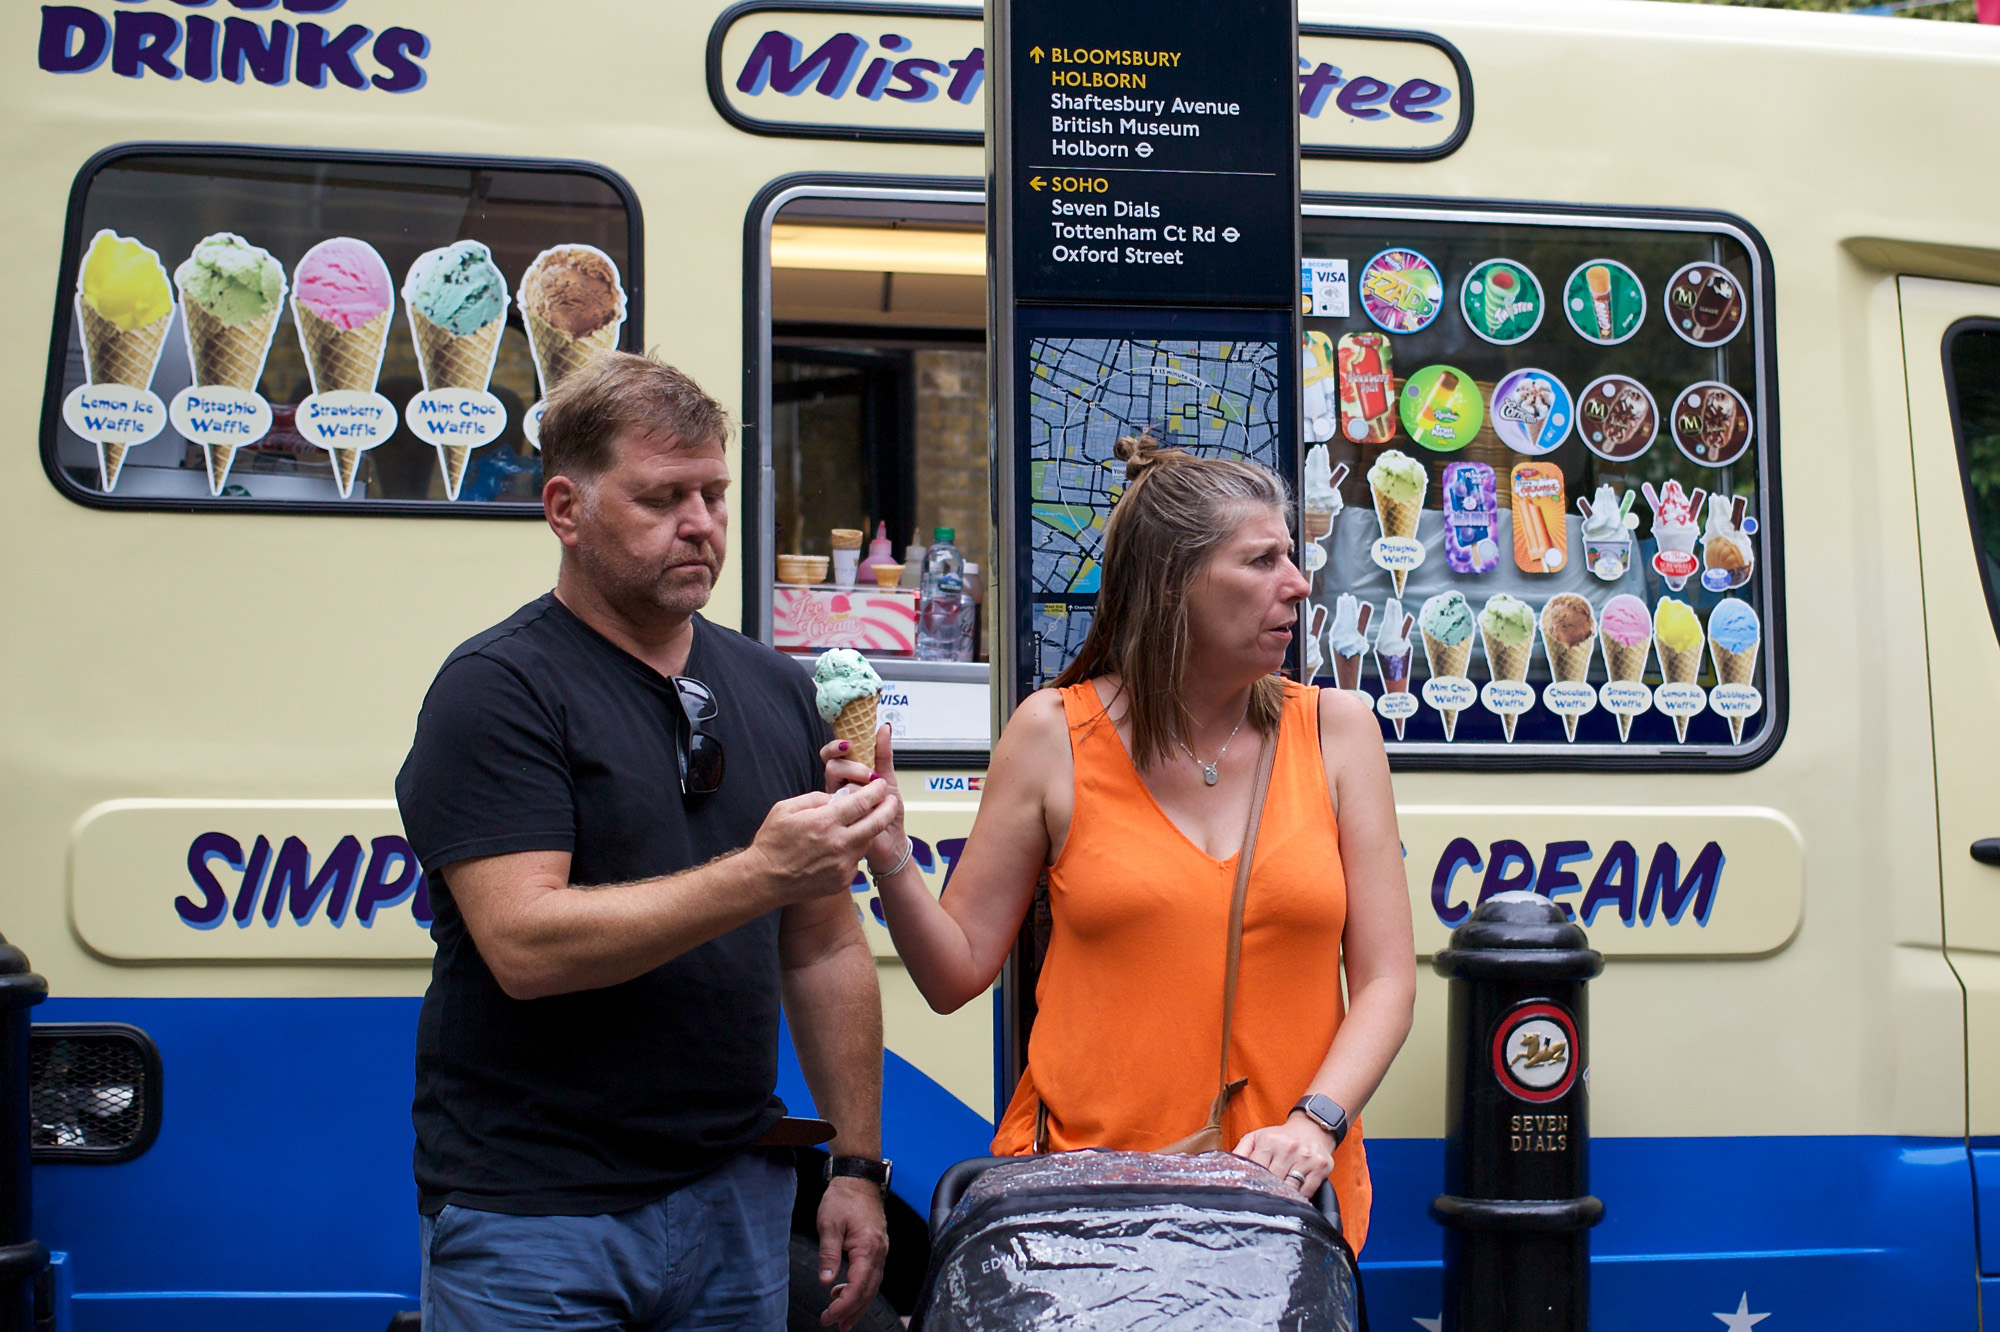 woman passes ice cream to man, looking away from him